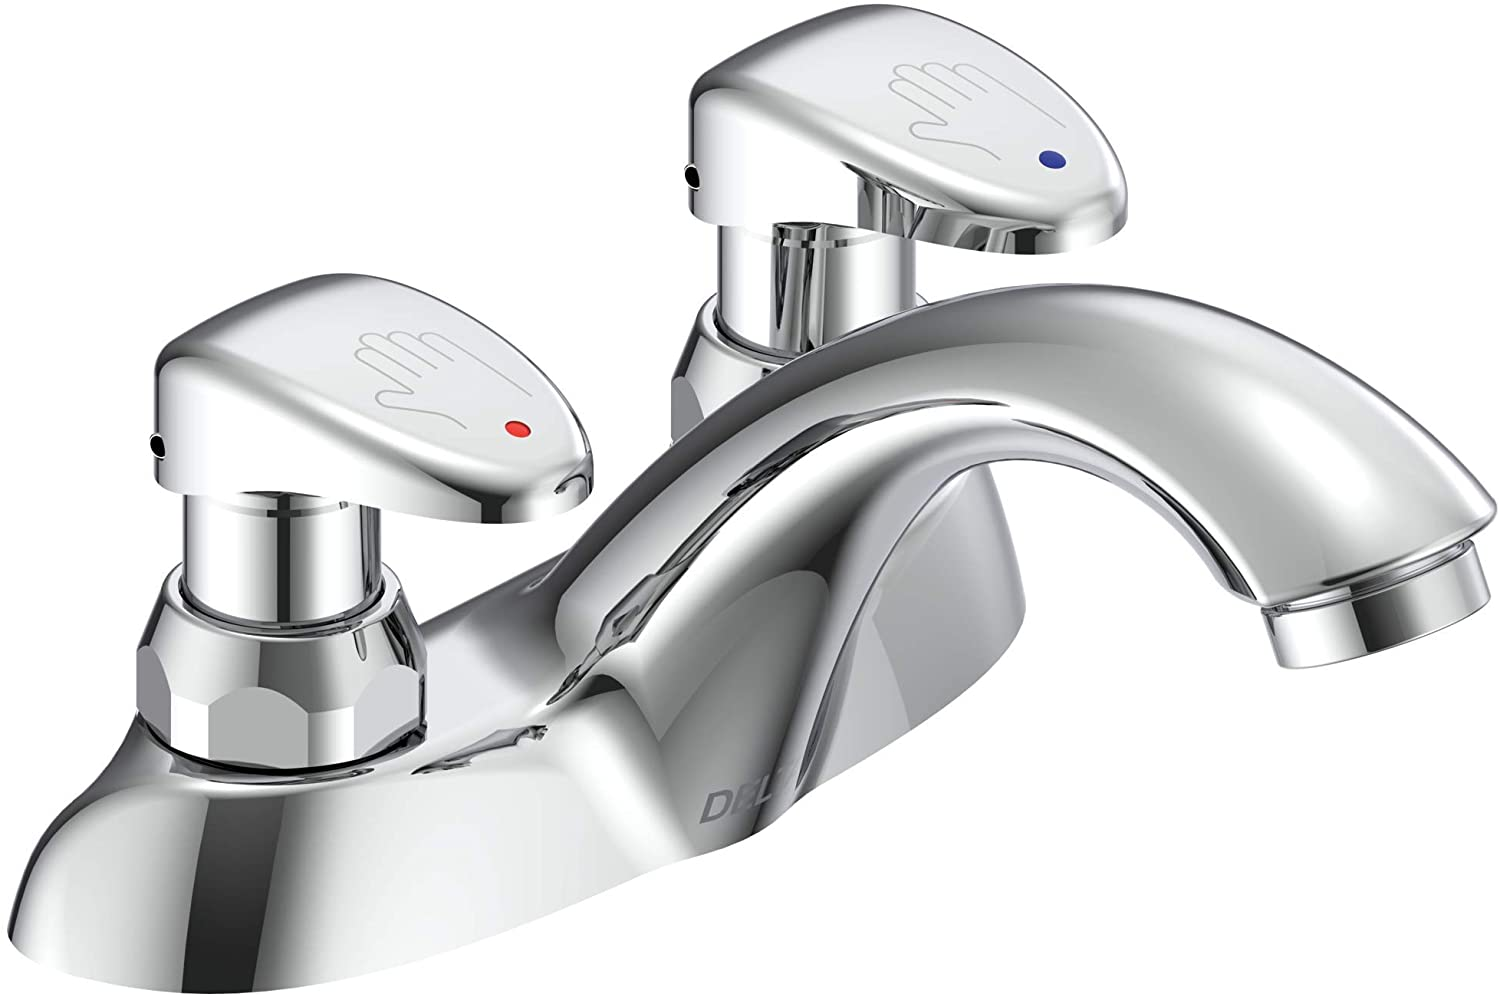 Delta Faucet 86T1153 86T Two Metering Online limited product Bathroom Financial sales sale Handle Slow-Close